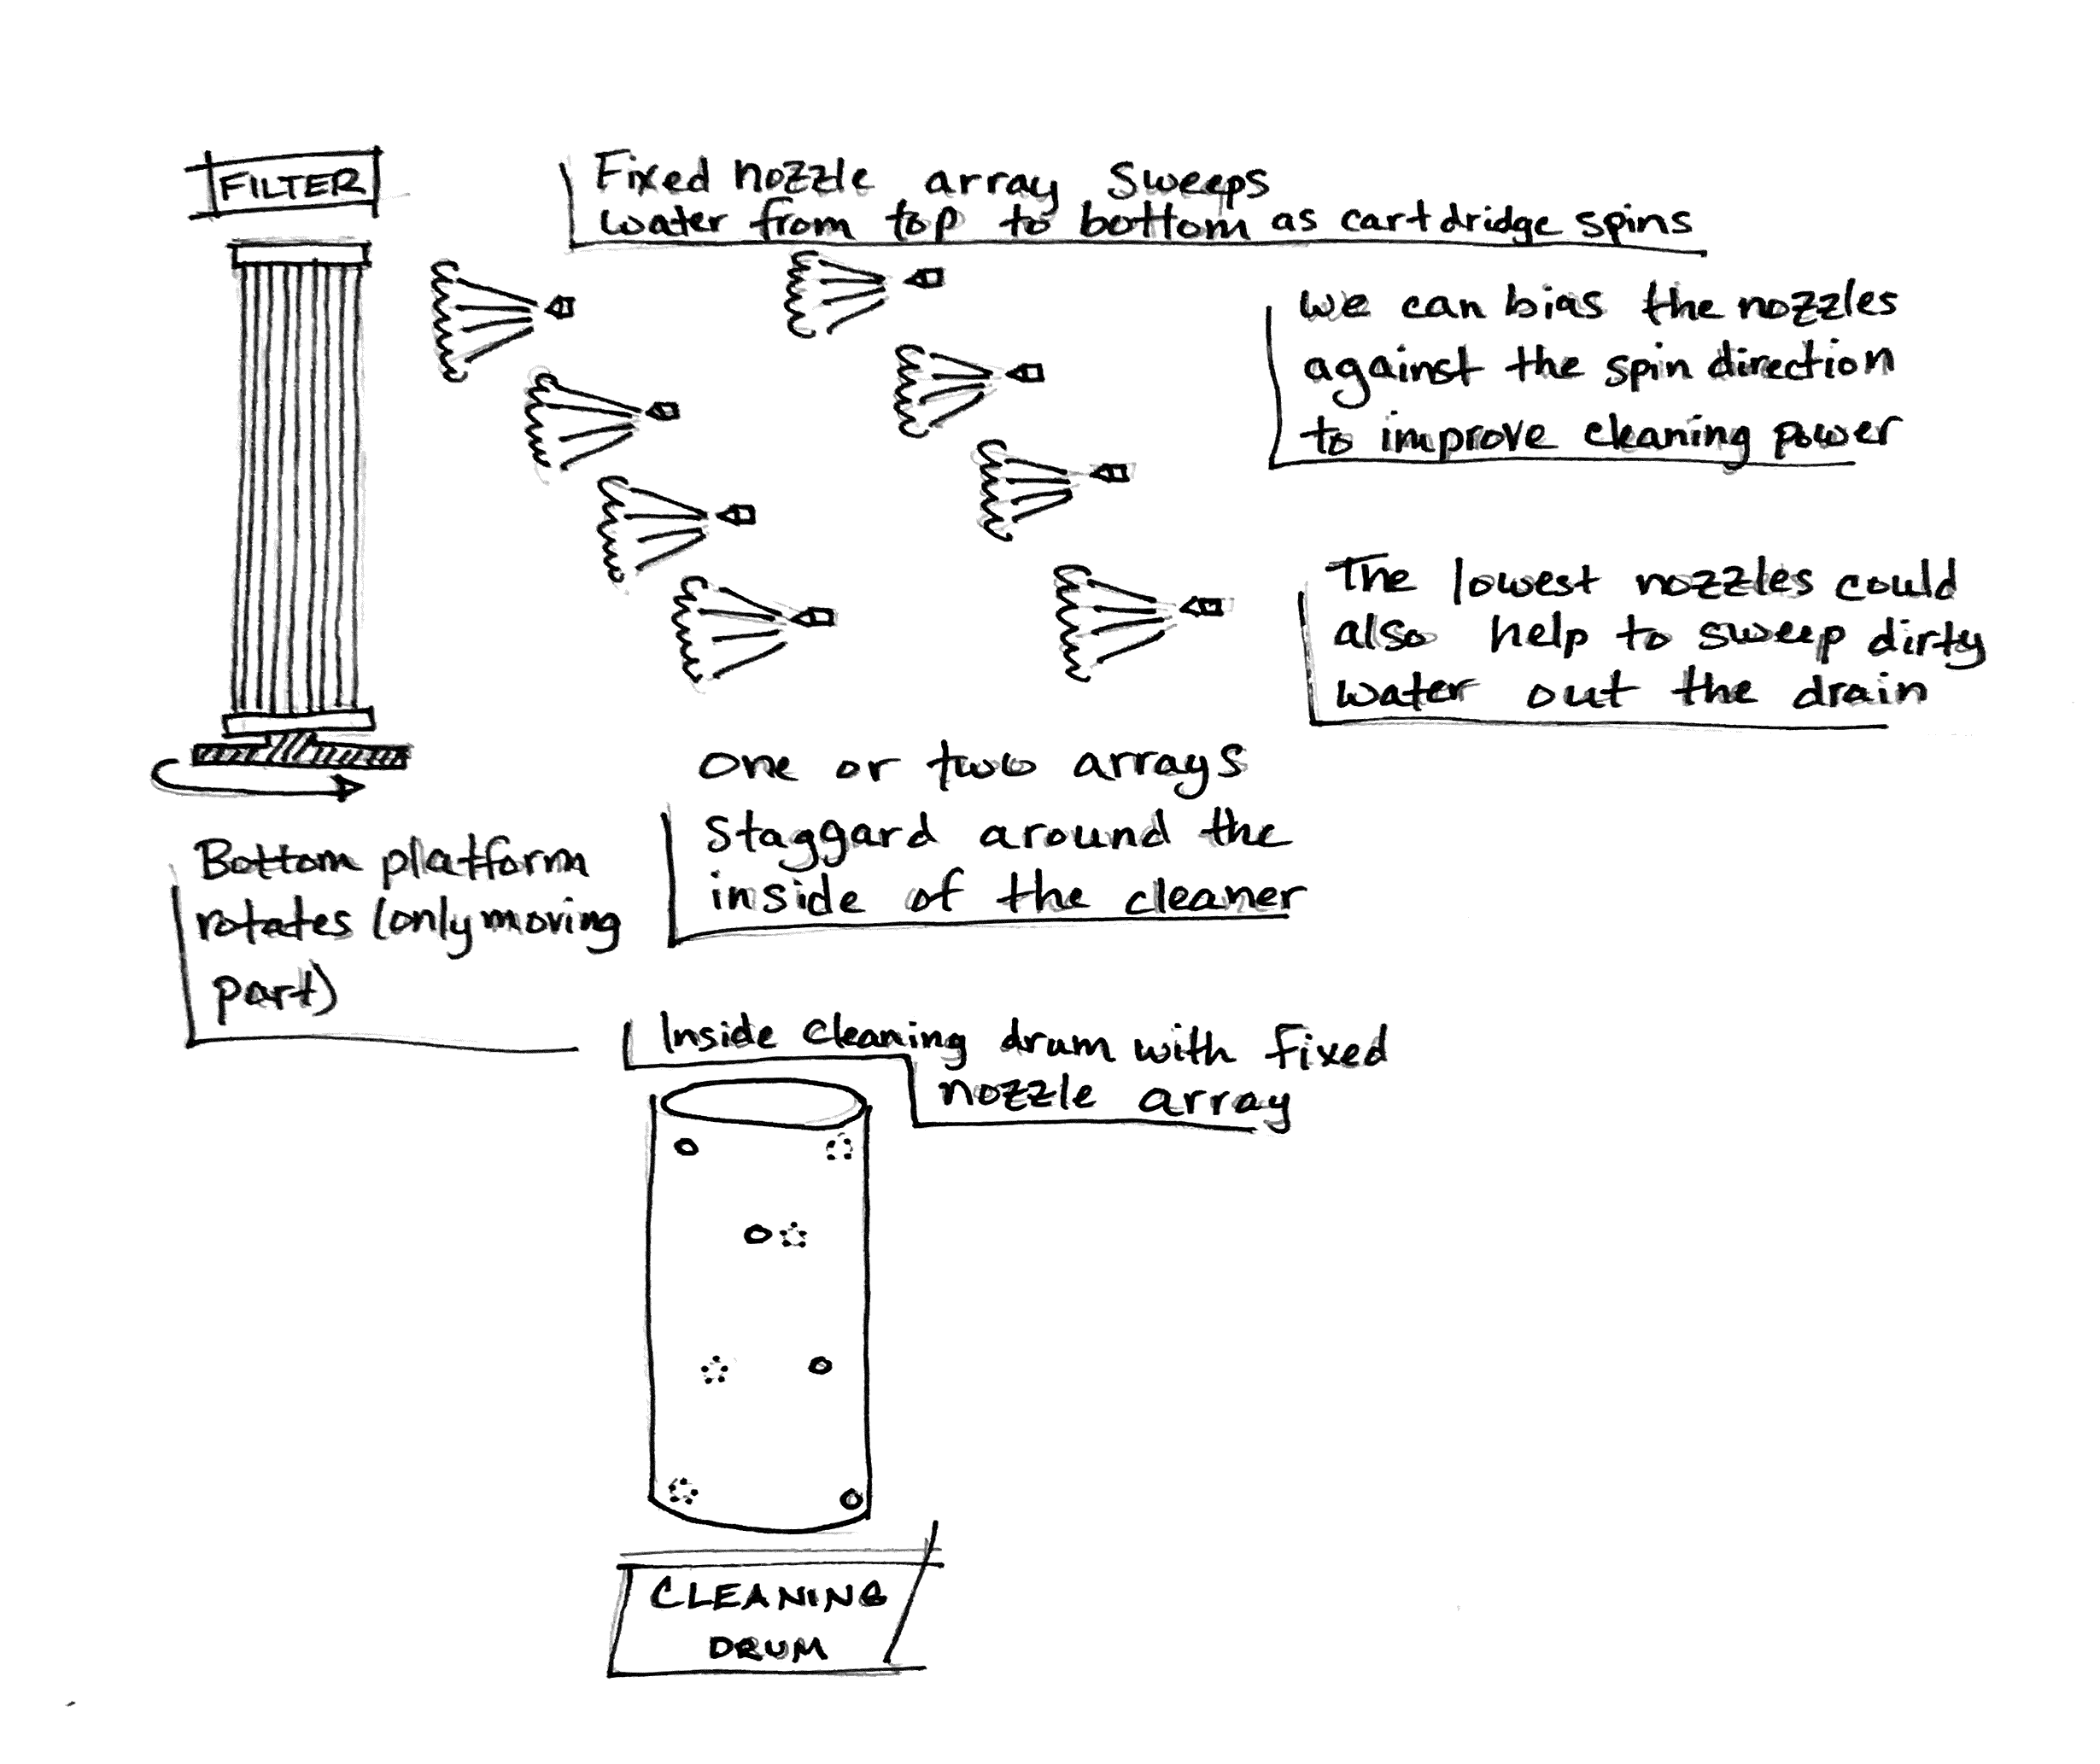 A sketch drawing of an early design idea for the CleanSweep product.